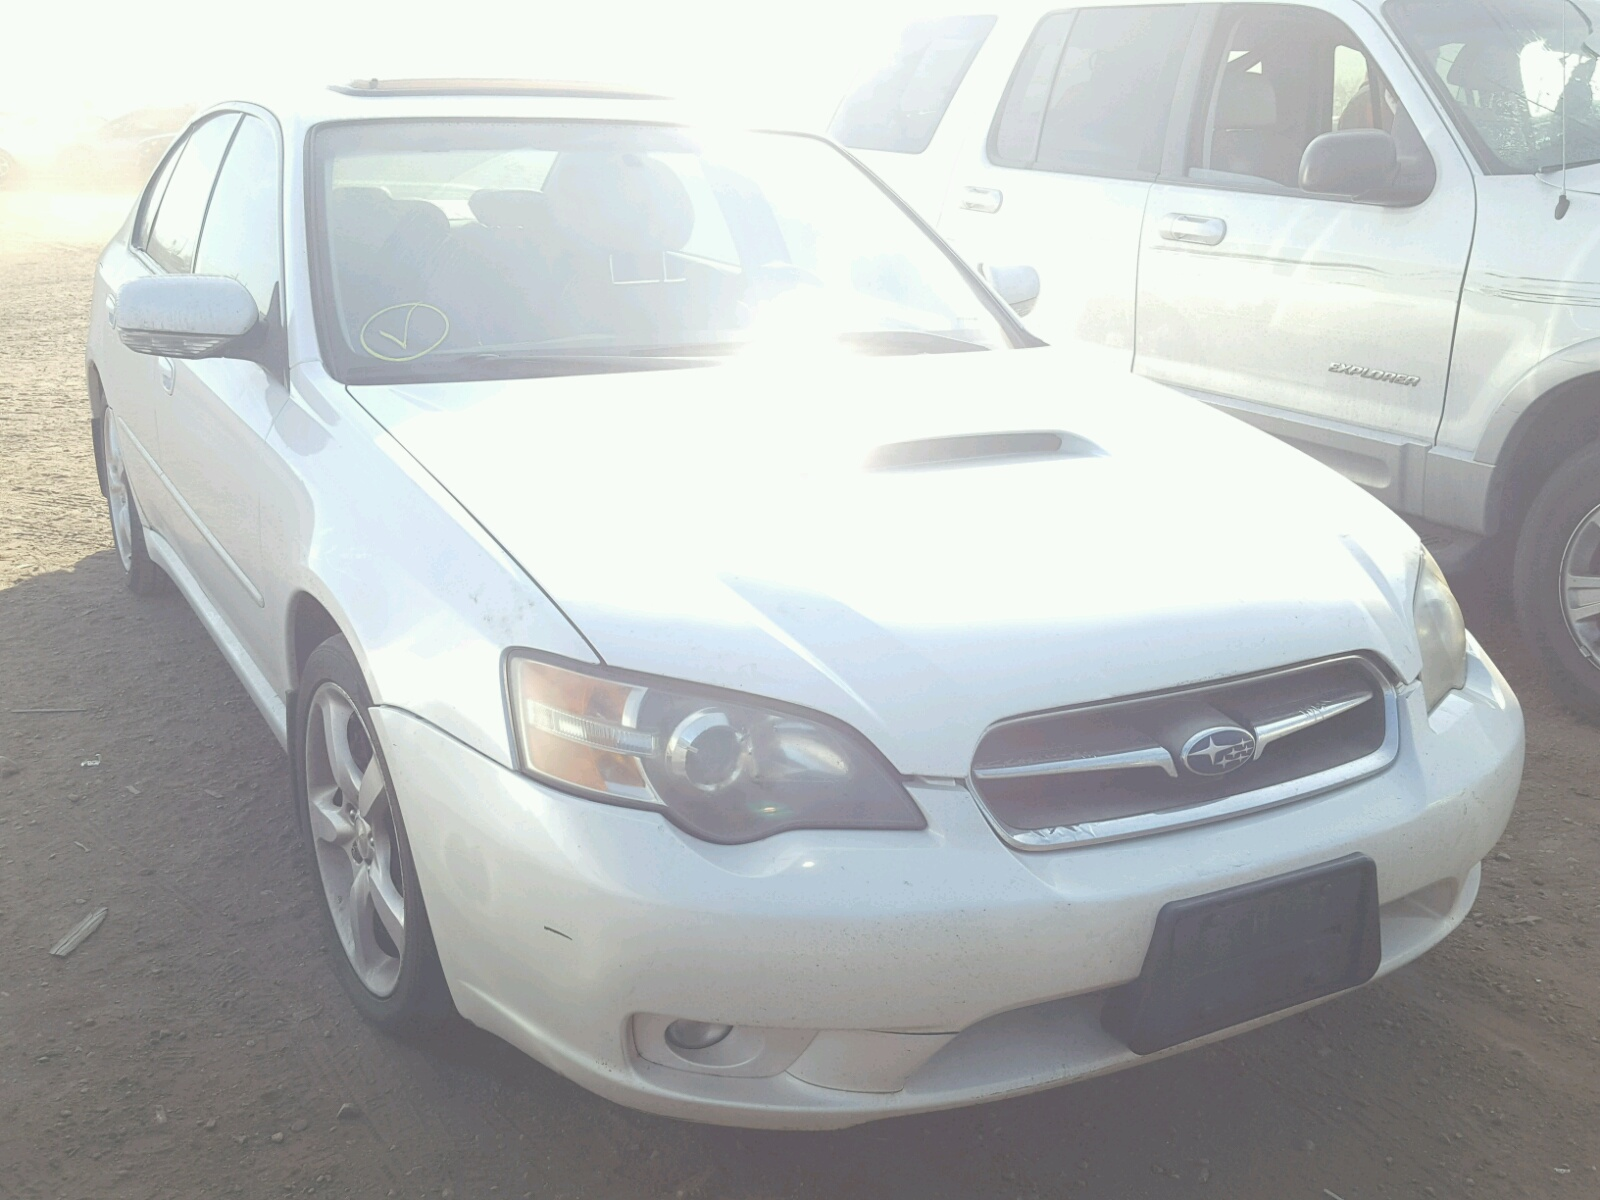 Auto Auction Ended on VIN JF1GH H 2008 SUBARU IMPREZA 2